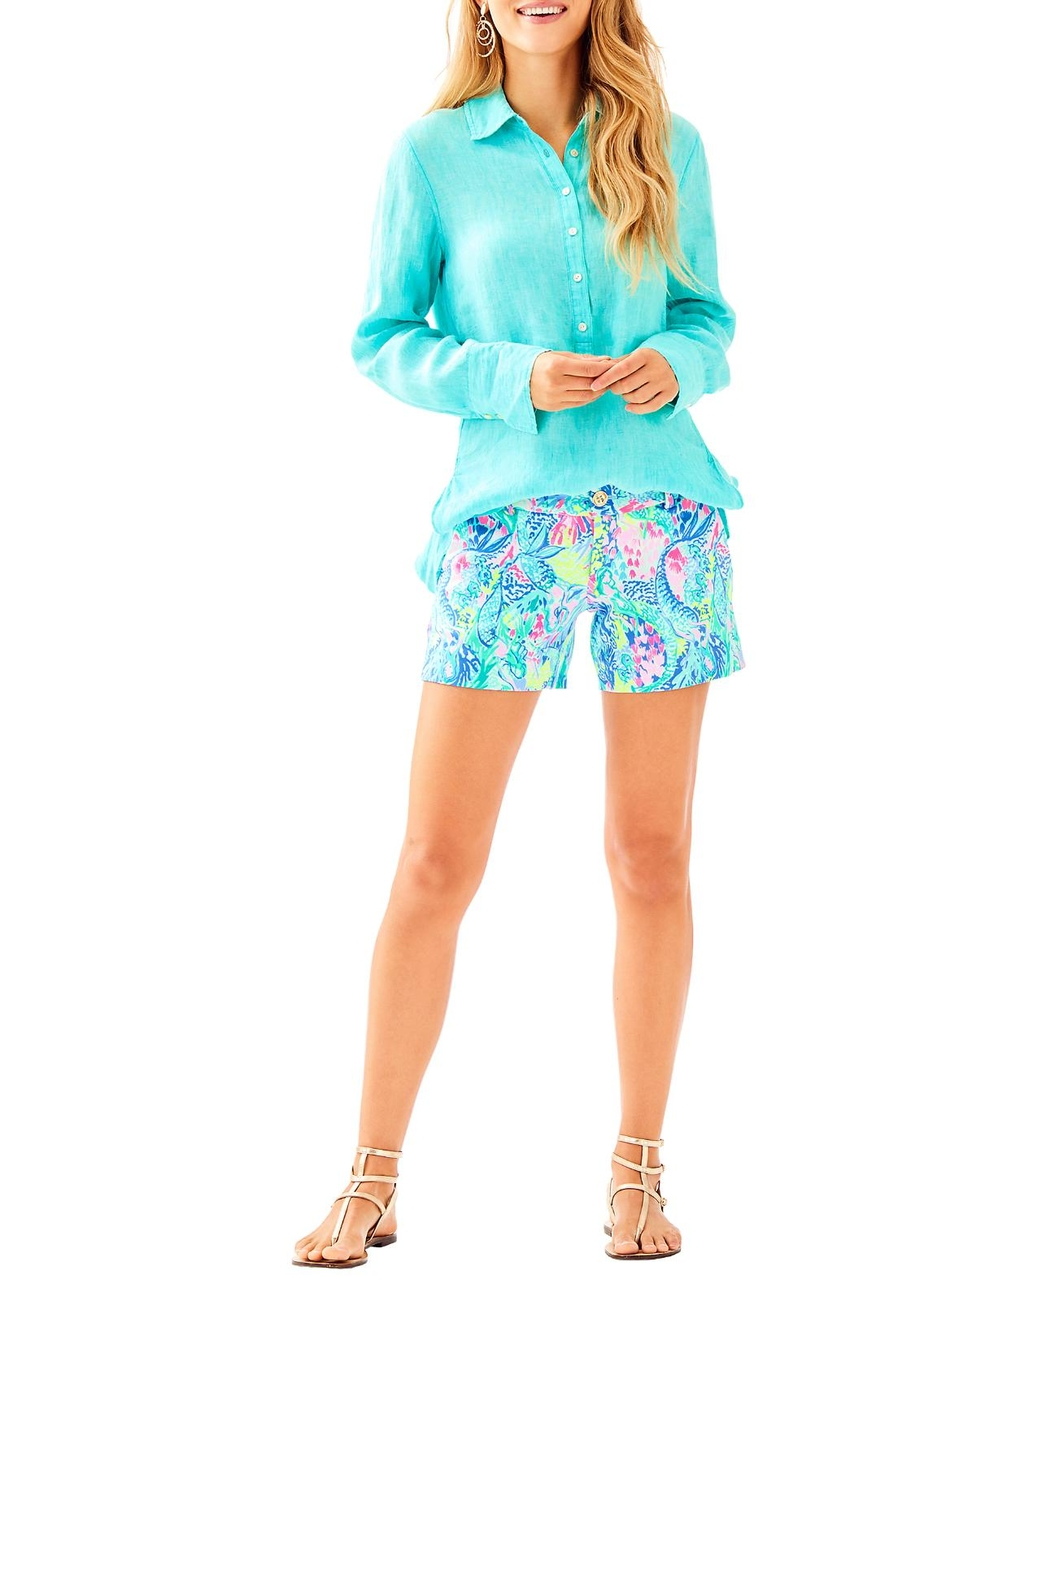 Lilly Pulitzer Seaview Button-Down Top - Side Cropped Image